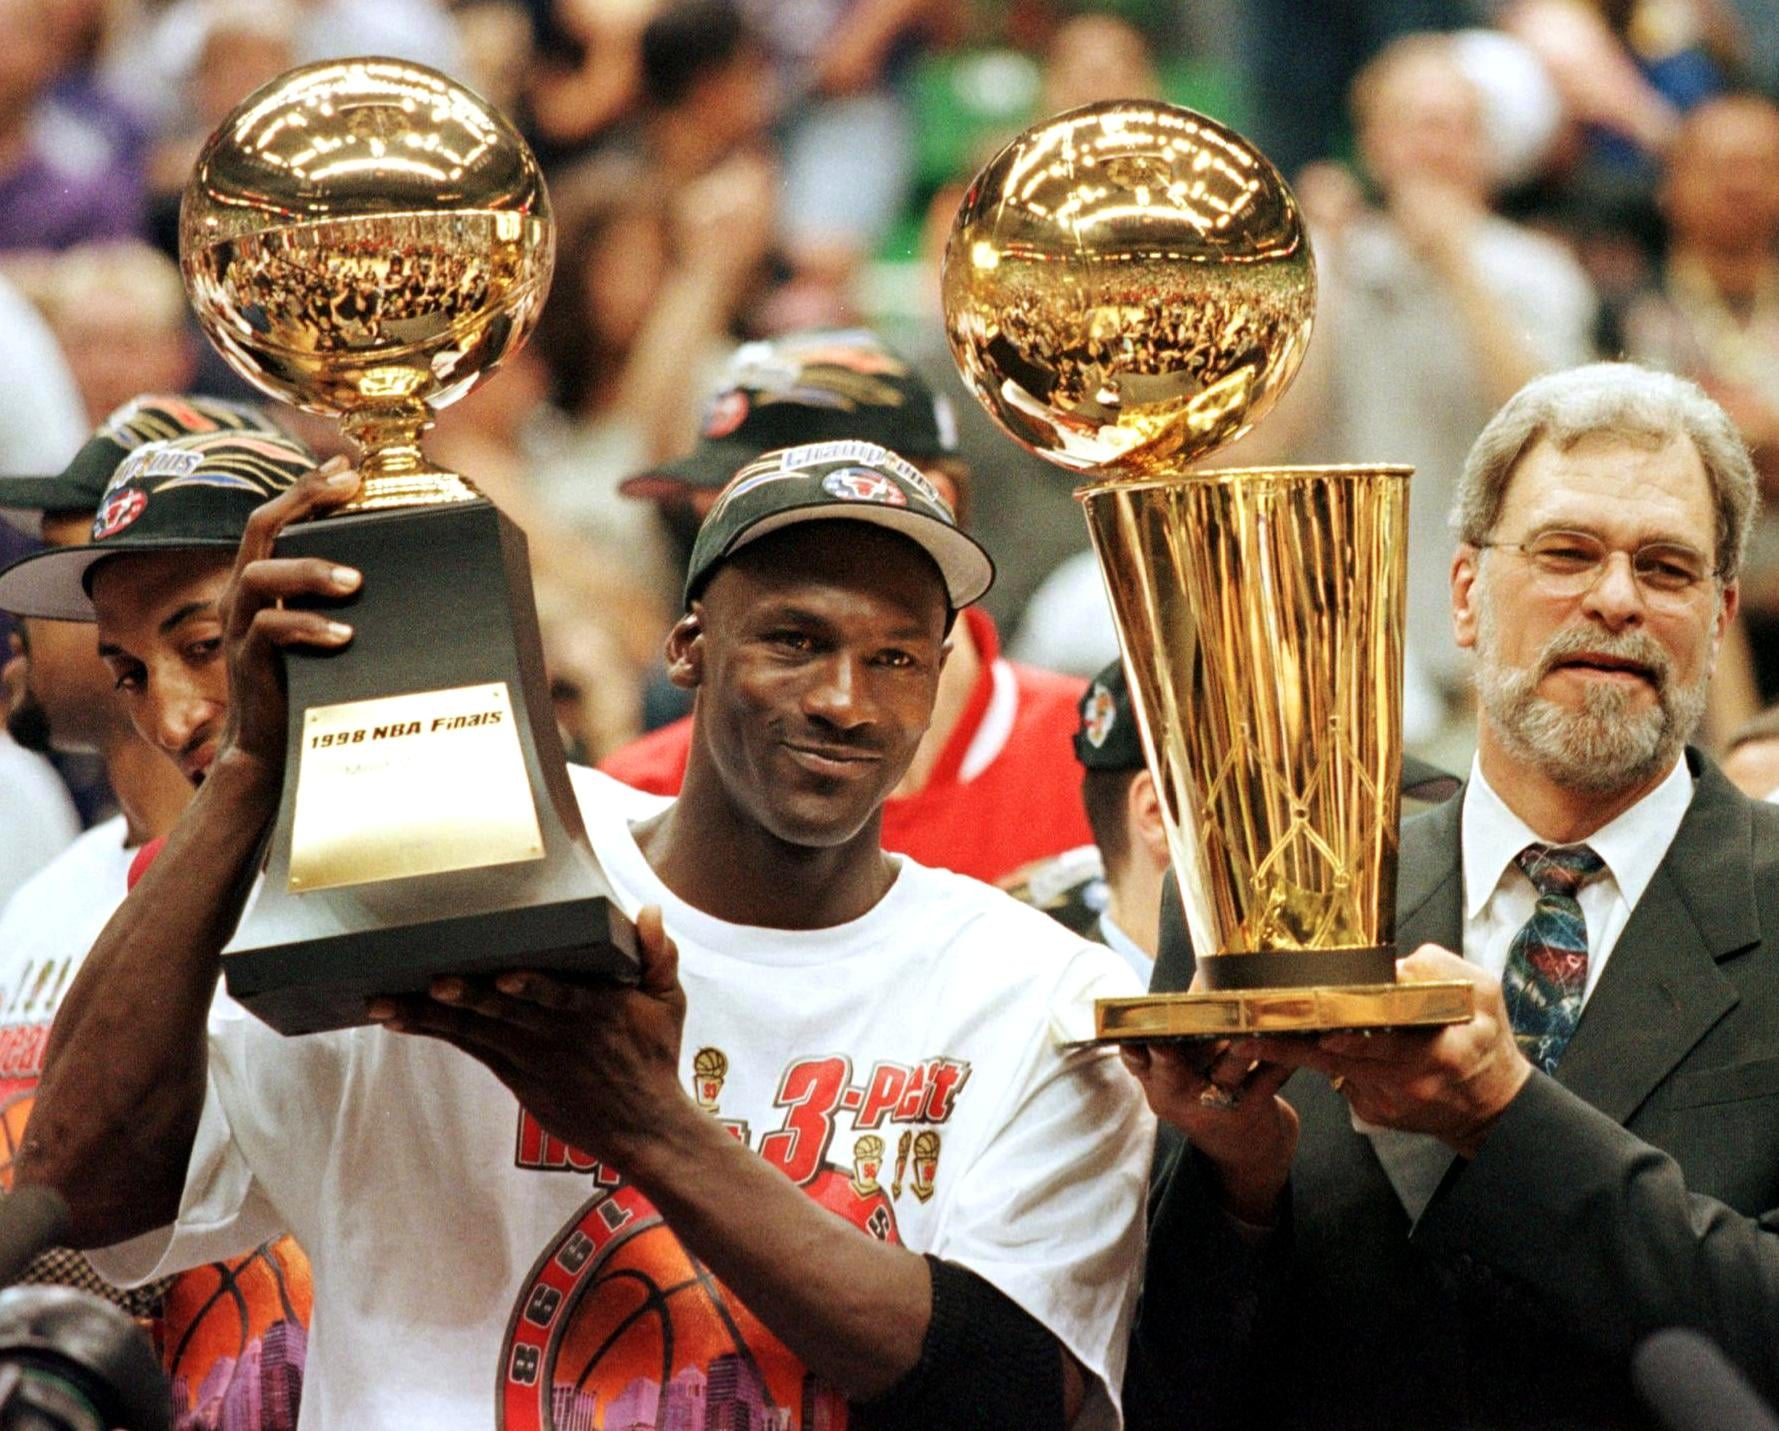 (FILES) In this 14 June 1998 file photo, Michael Jordan (L) holds the NBA Finals Most Valuable Player trophy and former Chicago Bulls head coach Phil Jackson holds the NBA champions Larry O'Brian trophy 14 June after winning game six of the NBA Finals with the Utah Jazz at the Delta Centre in Salt Lake City, UT. The Bulls won the game 87-86 to take their sixth NBA championship. Jackson left the Bulls following the 1998 season and 12 January reports indicate that Jordan plans to announce his retirement at a 13 January news conference in Chicago.   AFP PHOTO/FILES/Jeff HAYNES (Photo by JEFF HAYNES / AFP) (Photo by JEFF HAYNES/AFP via Getty Images)